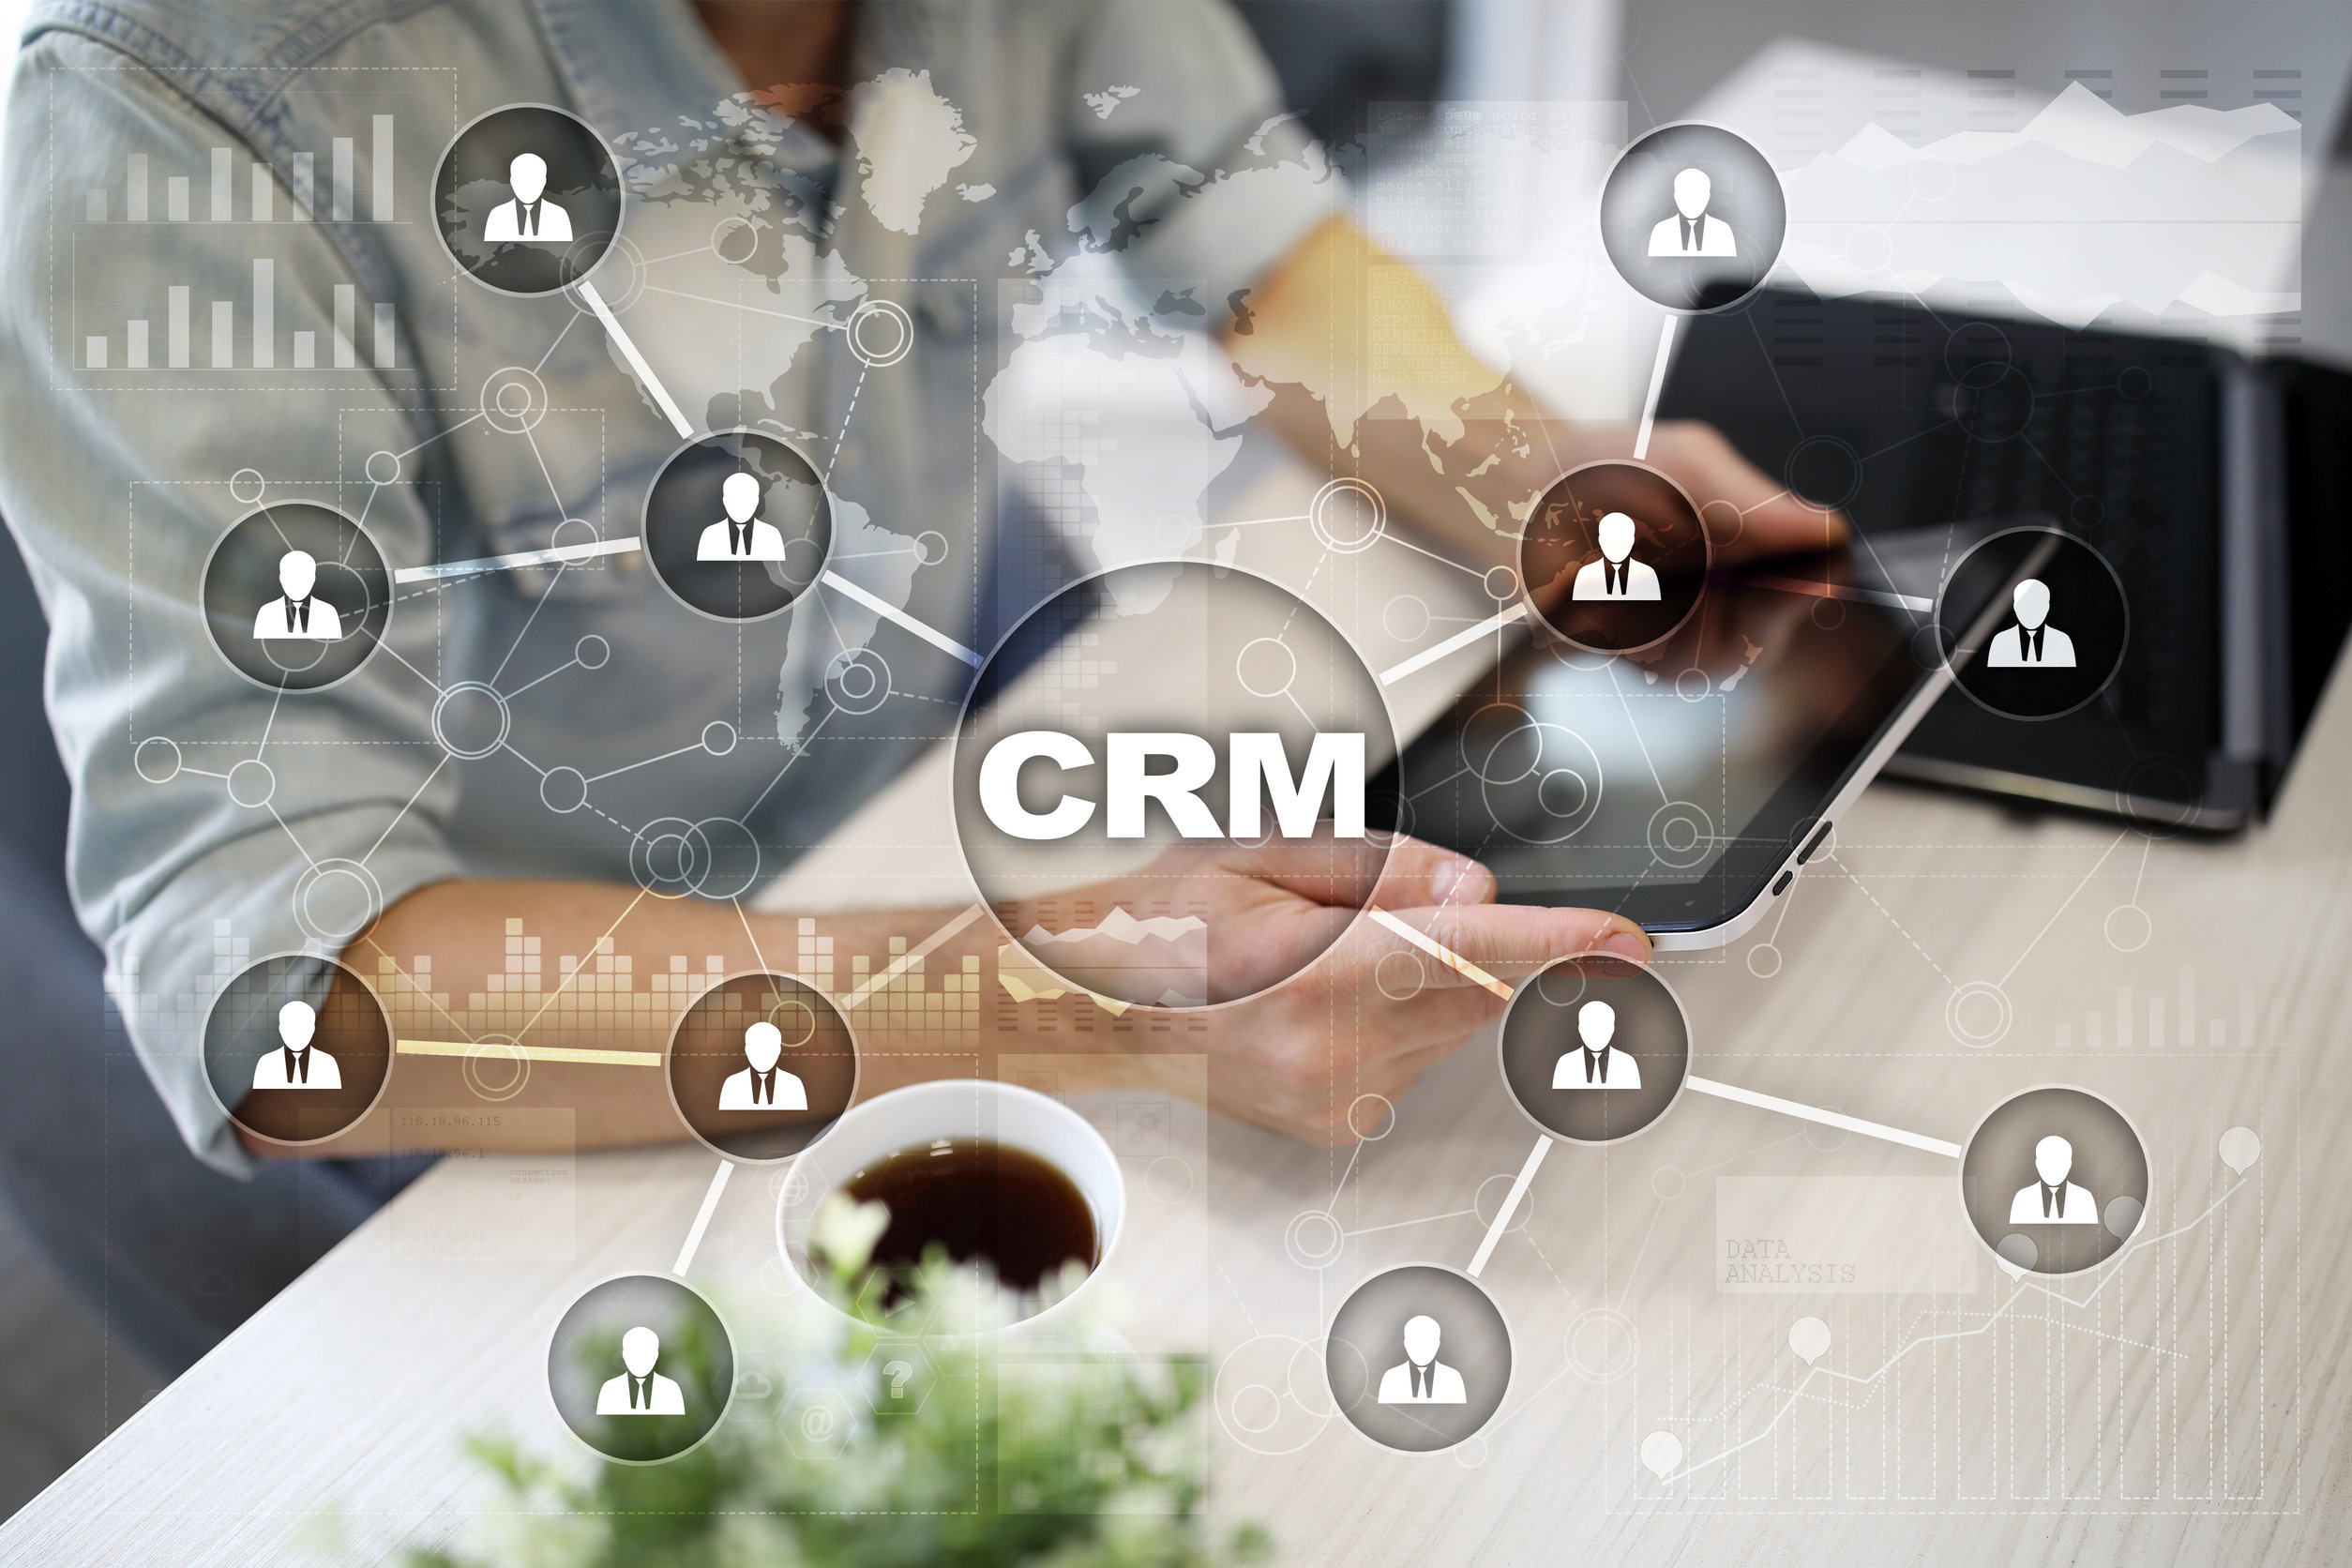 5 Ways CRM Software Will Change Your Business For The Better